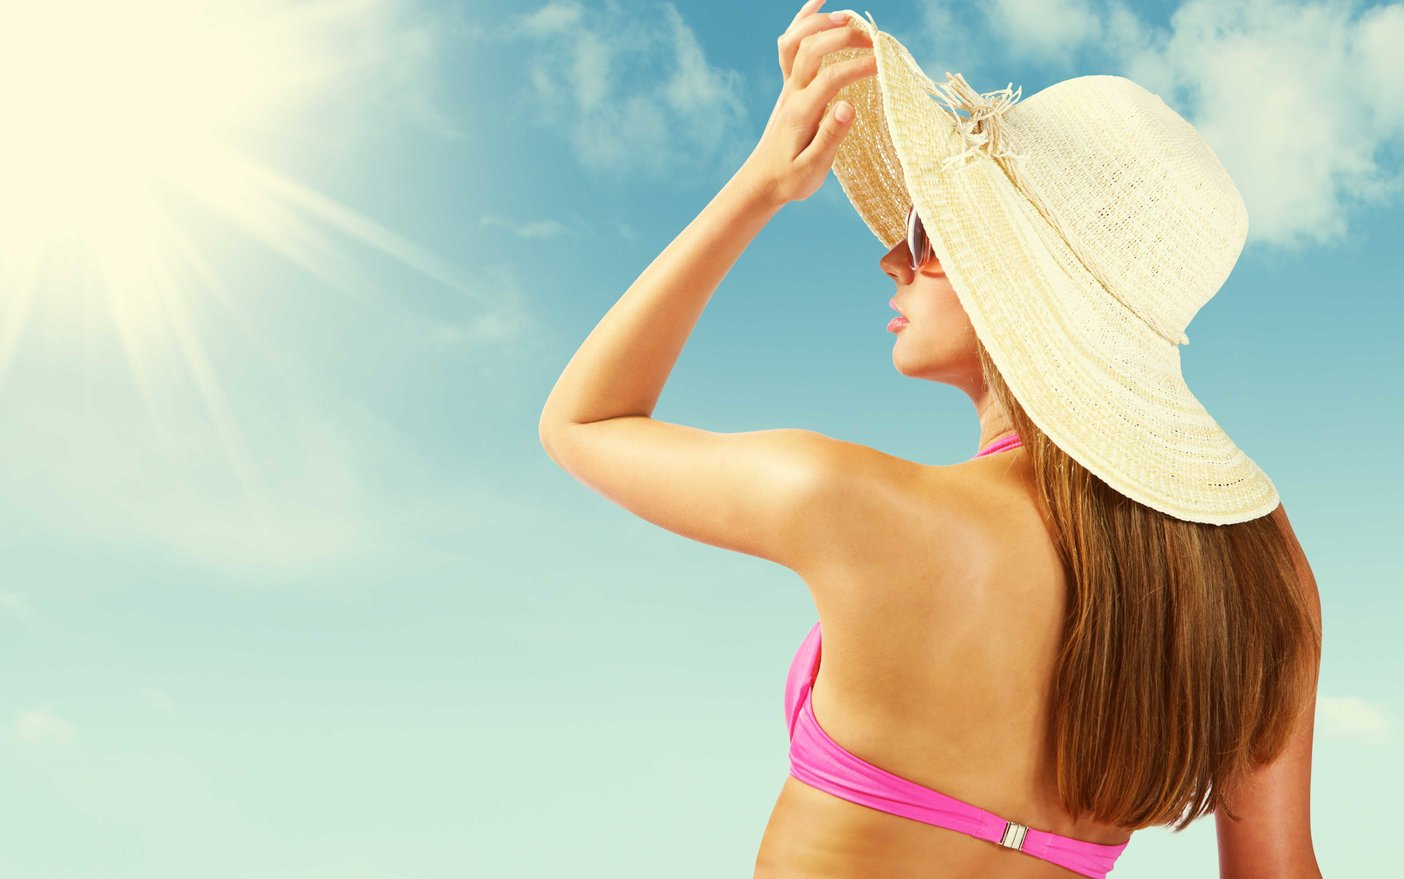 Sun Protection: Must Have Items when Travelling to Sunny Countries